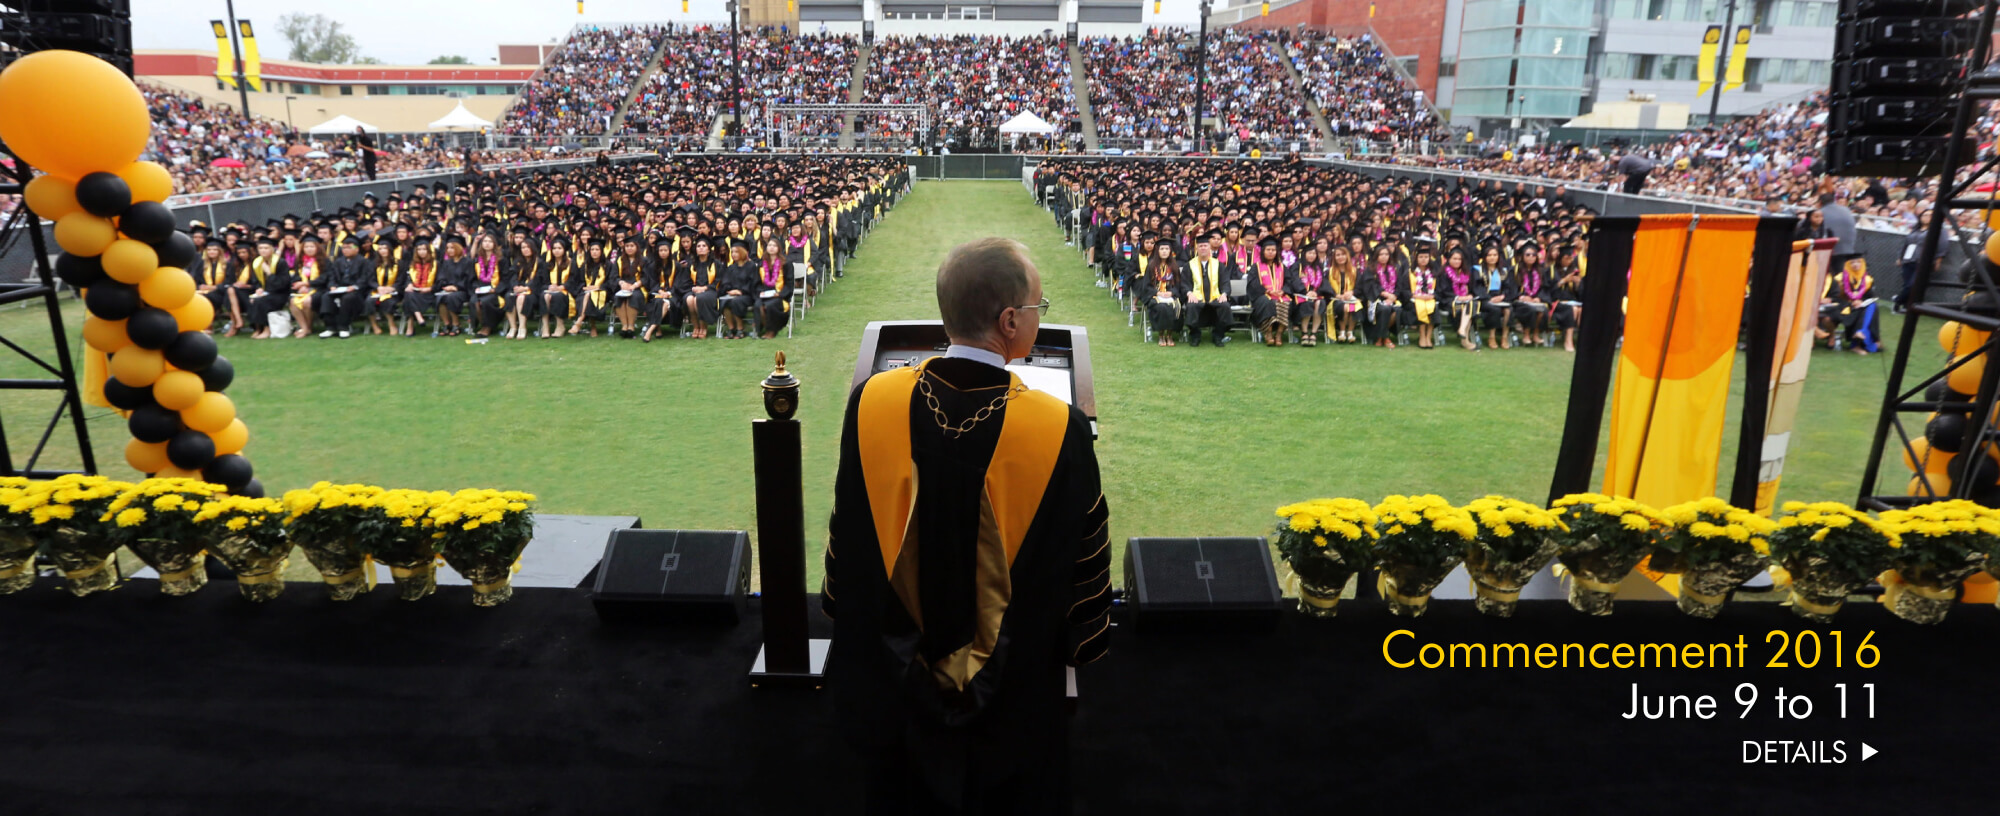 Save the Date commencement schedule